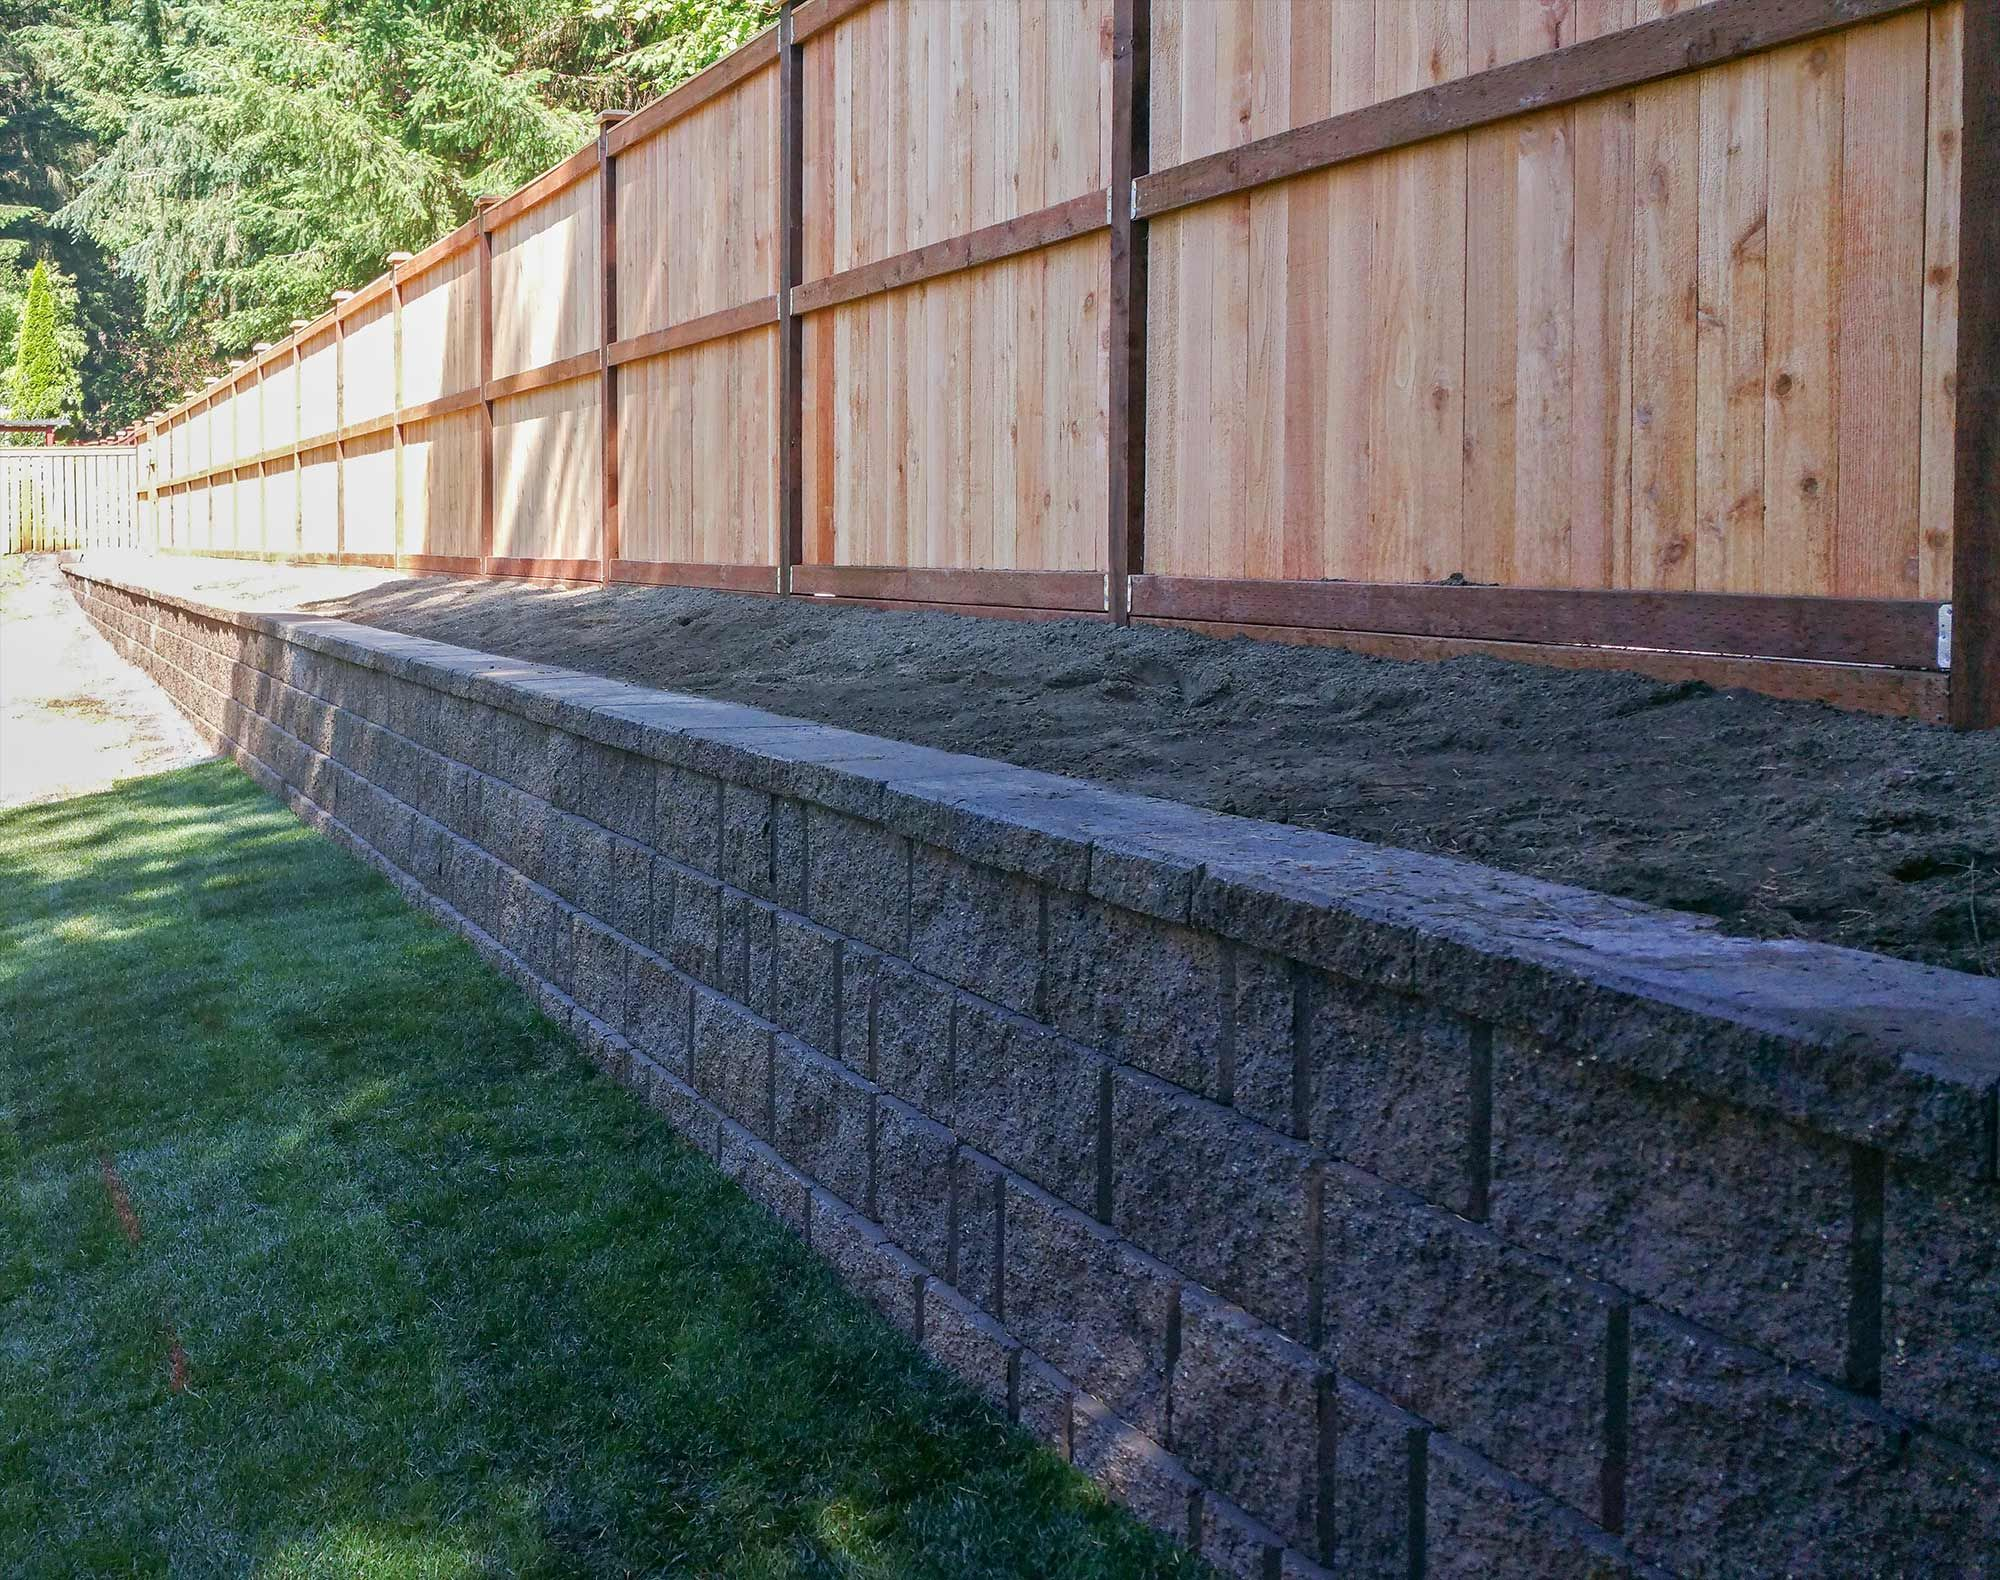 We Set The Fence Back 3 Feet From Retaining Wall To Create A Foot